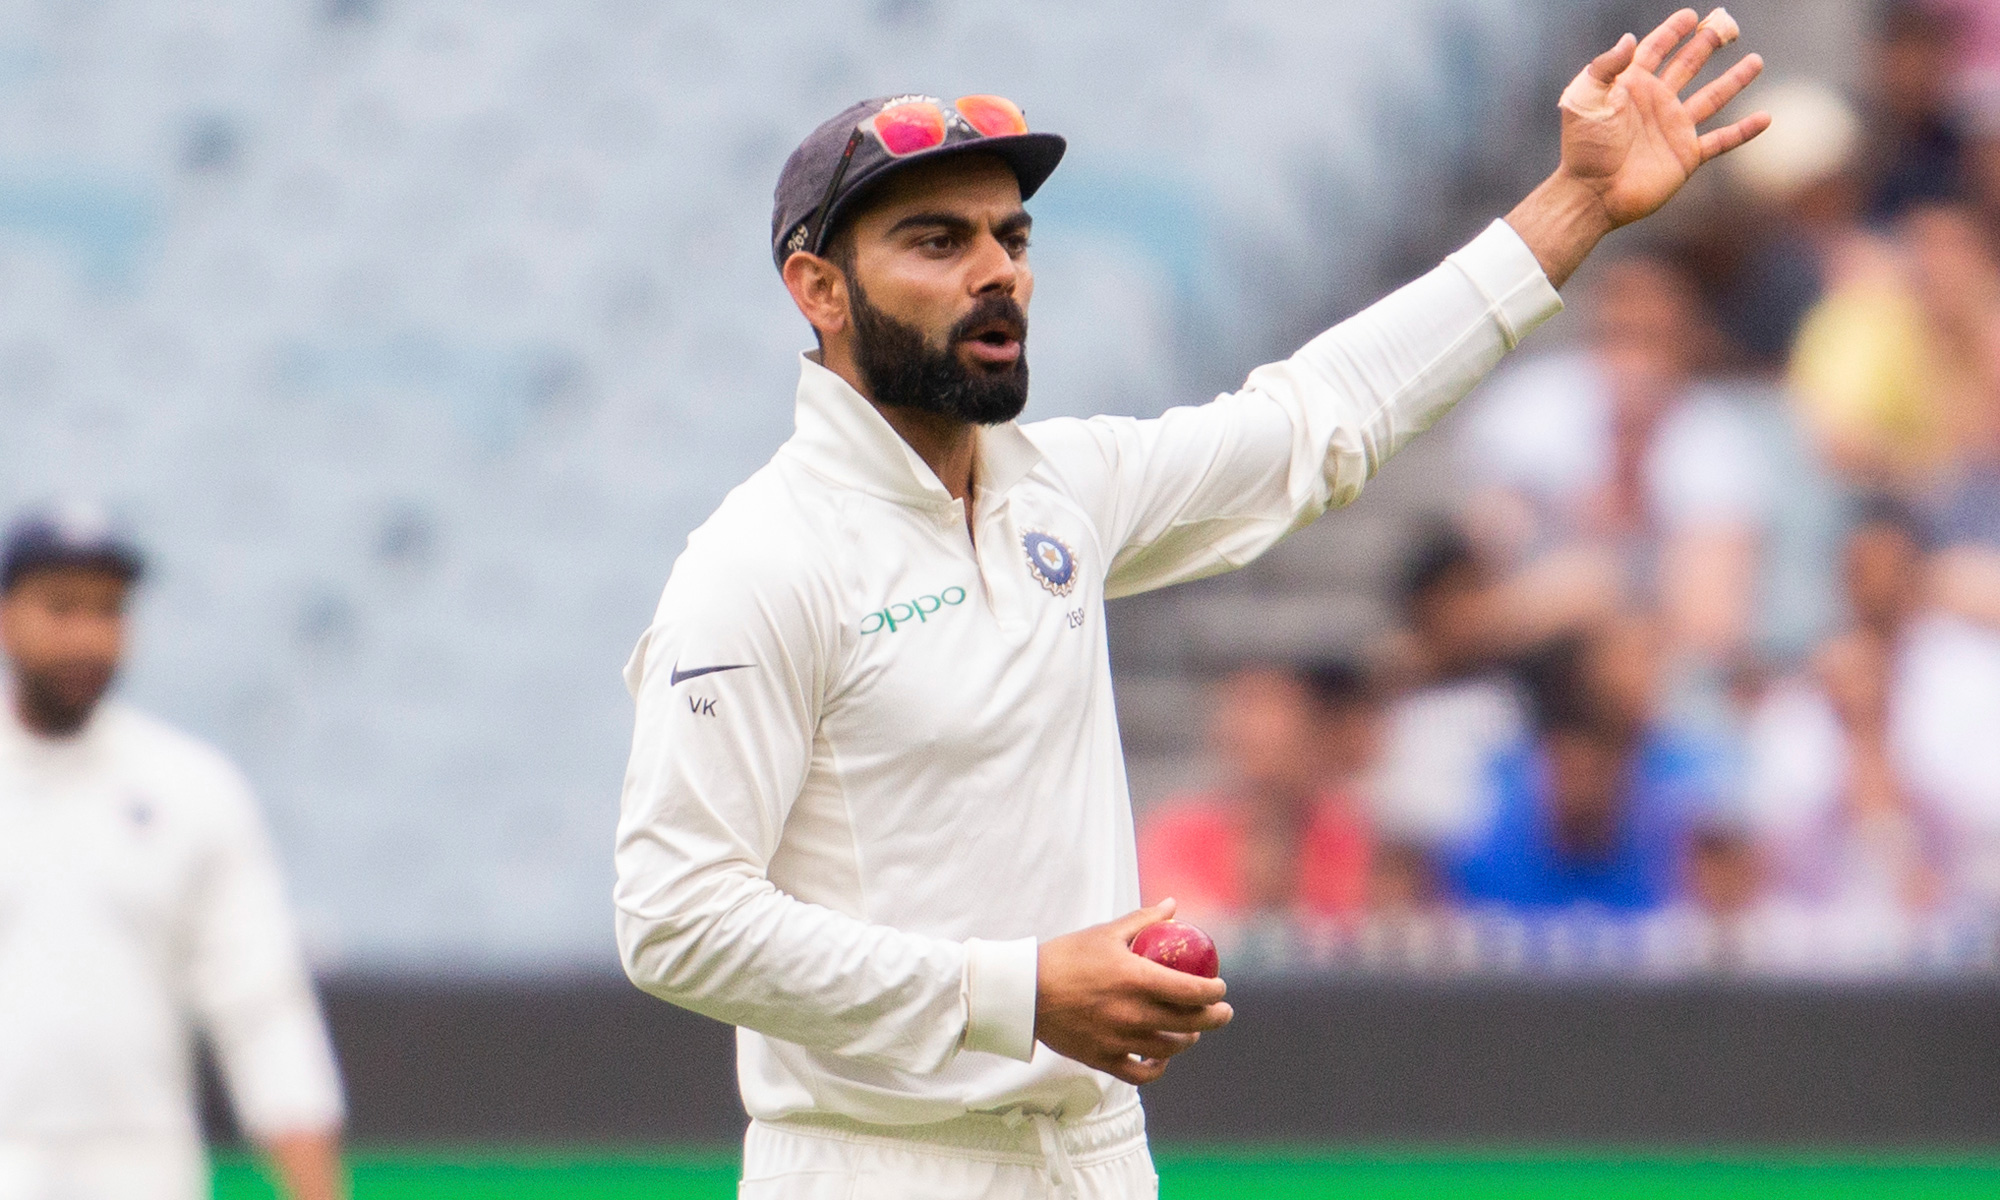 India's captain Virat Kohli makes a gesture while in the field during play on day four of the third cricket test between India and Australia in Melbourne, Australia on Saturday, December 29, 2018.